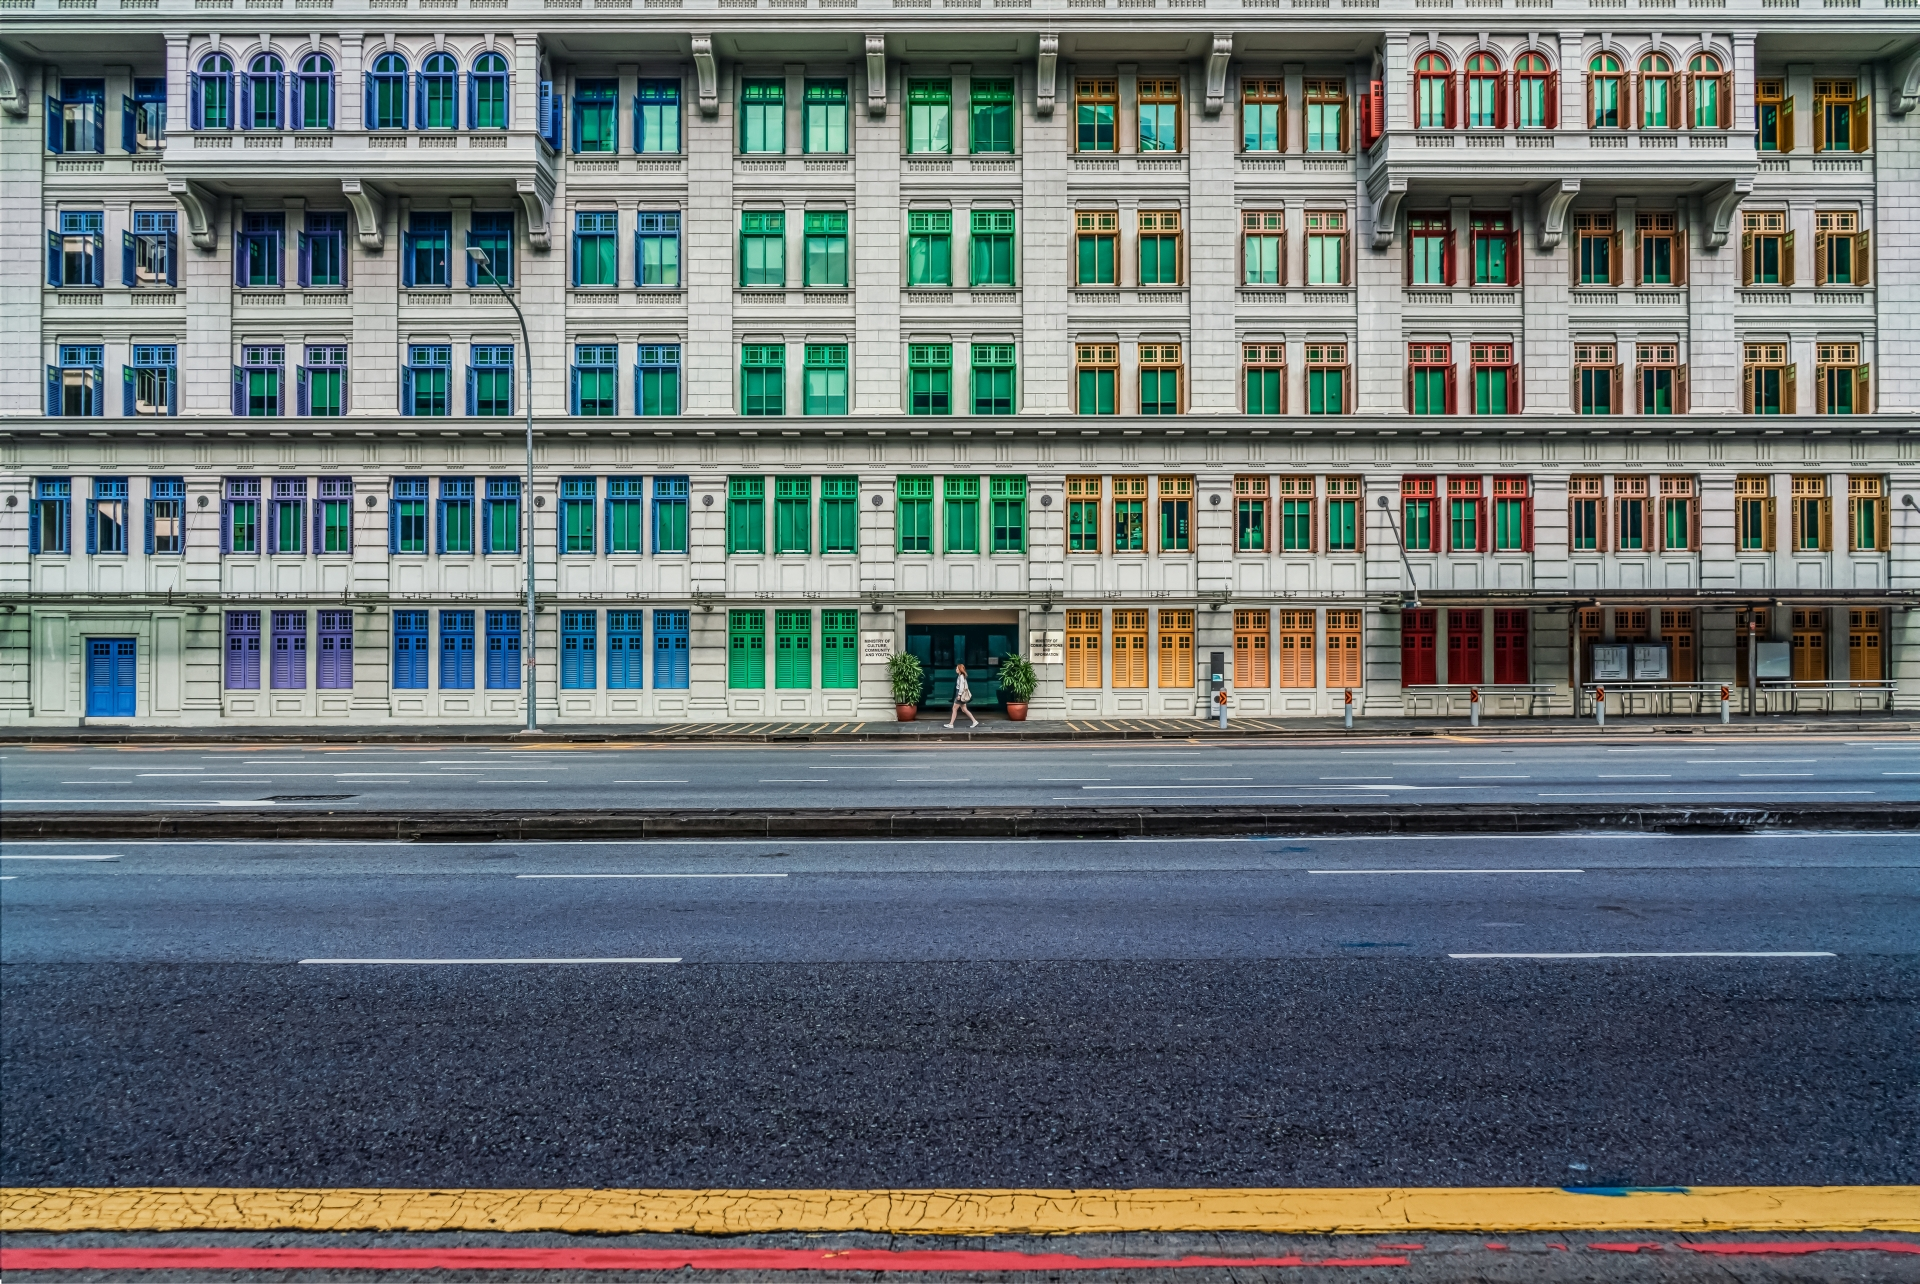 The colourful windows of a building in Singapore